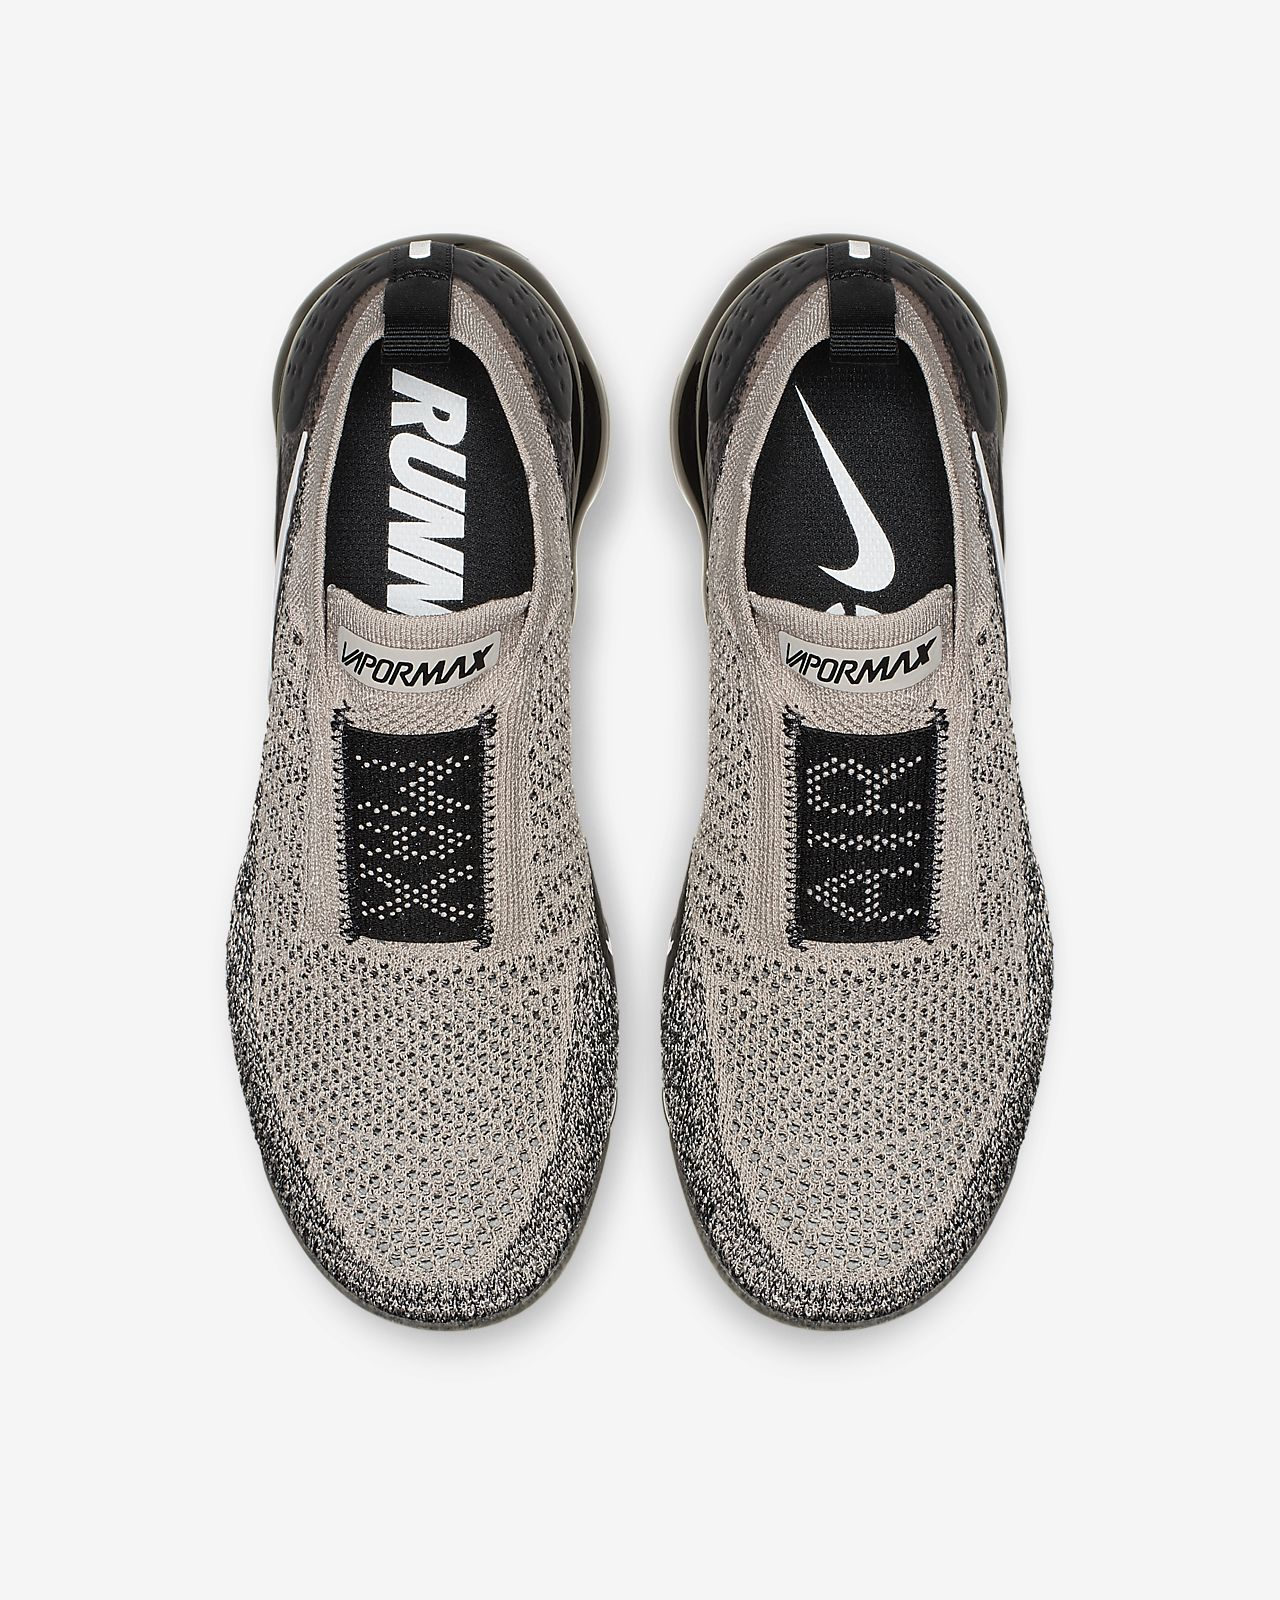 brand new 396ad ac110 ... Chaussure Nike Air VaporMax Flyknit Moc 2 pour Femme